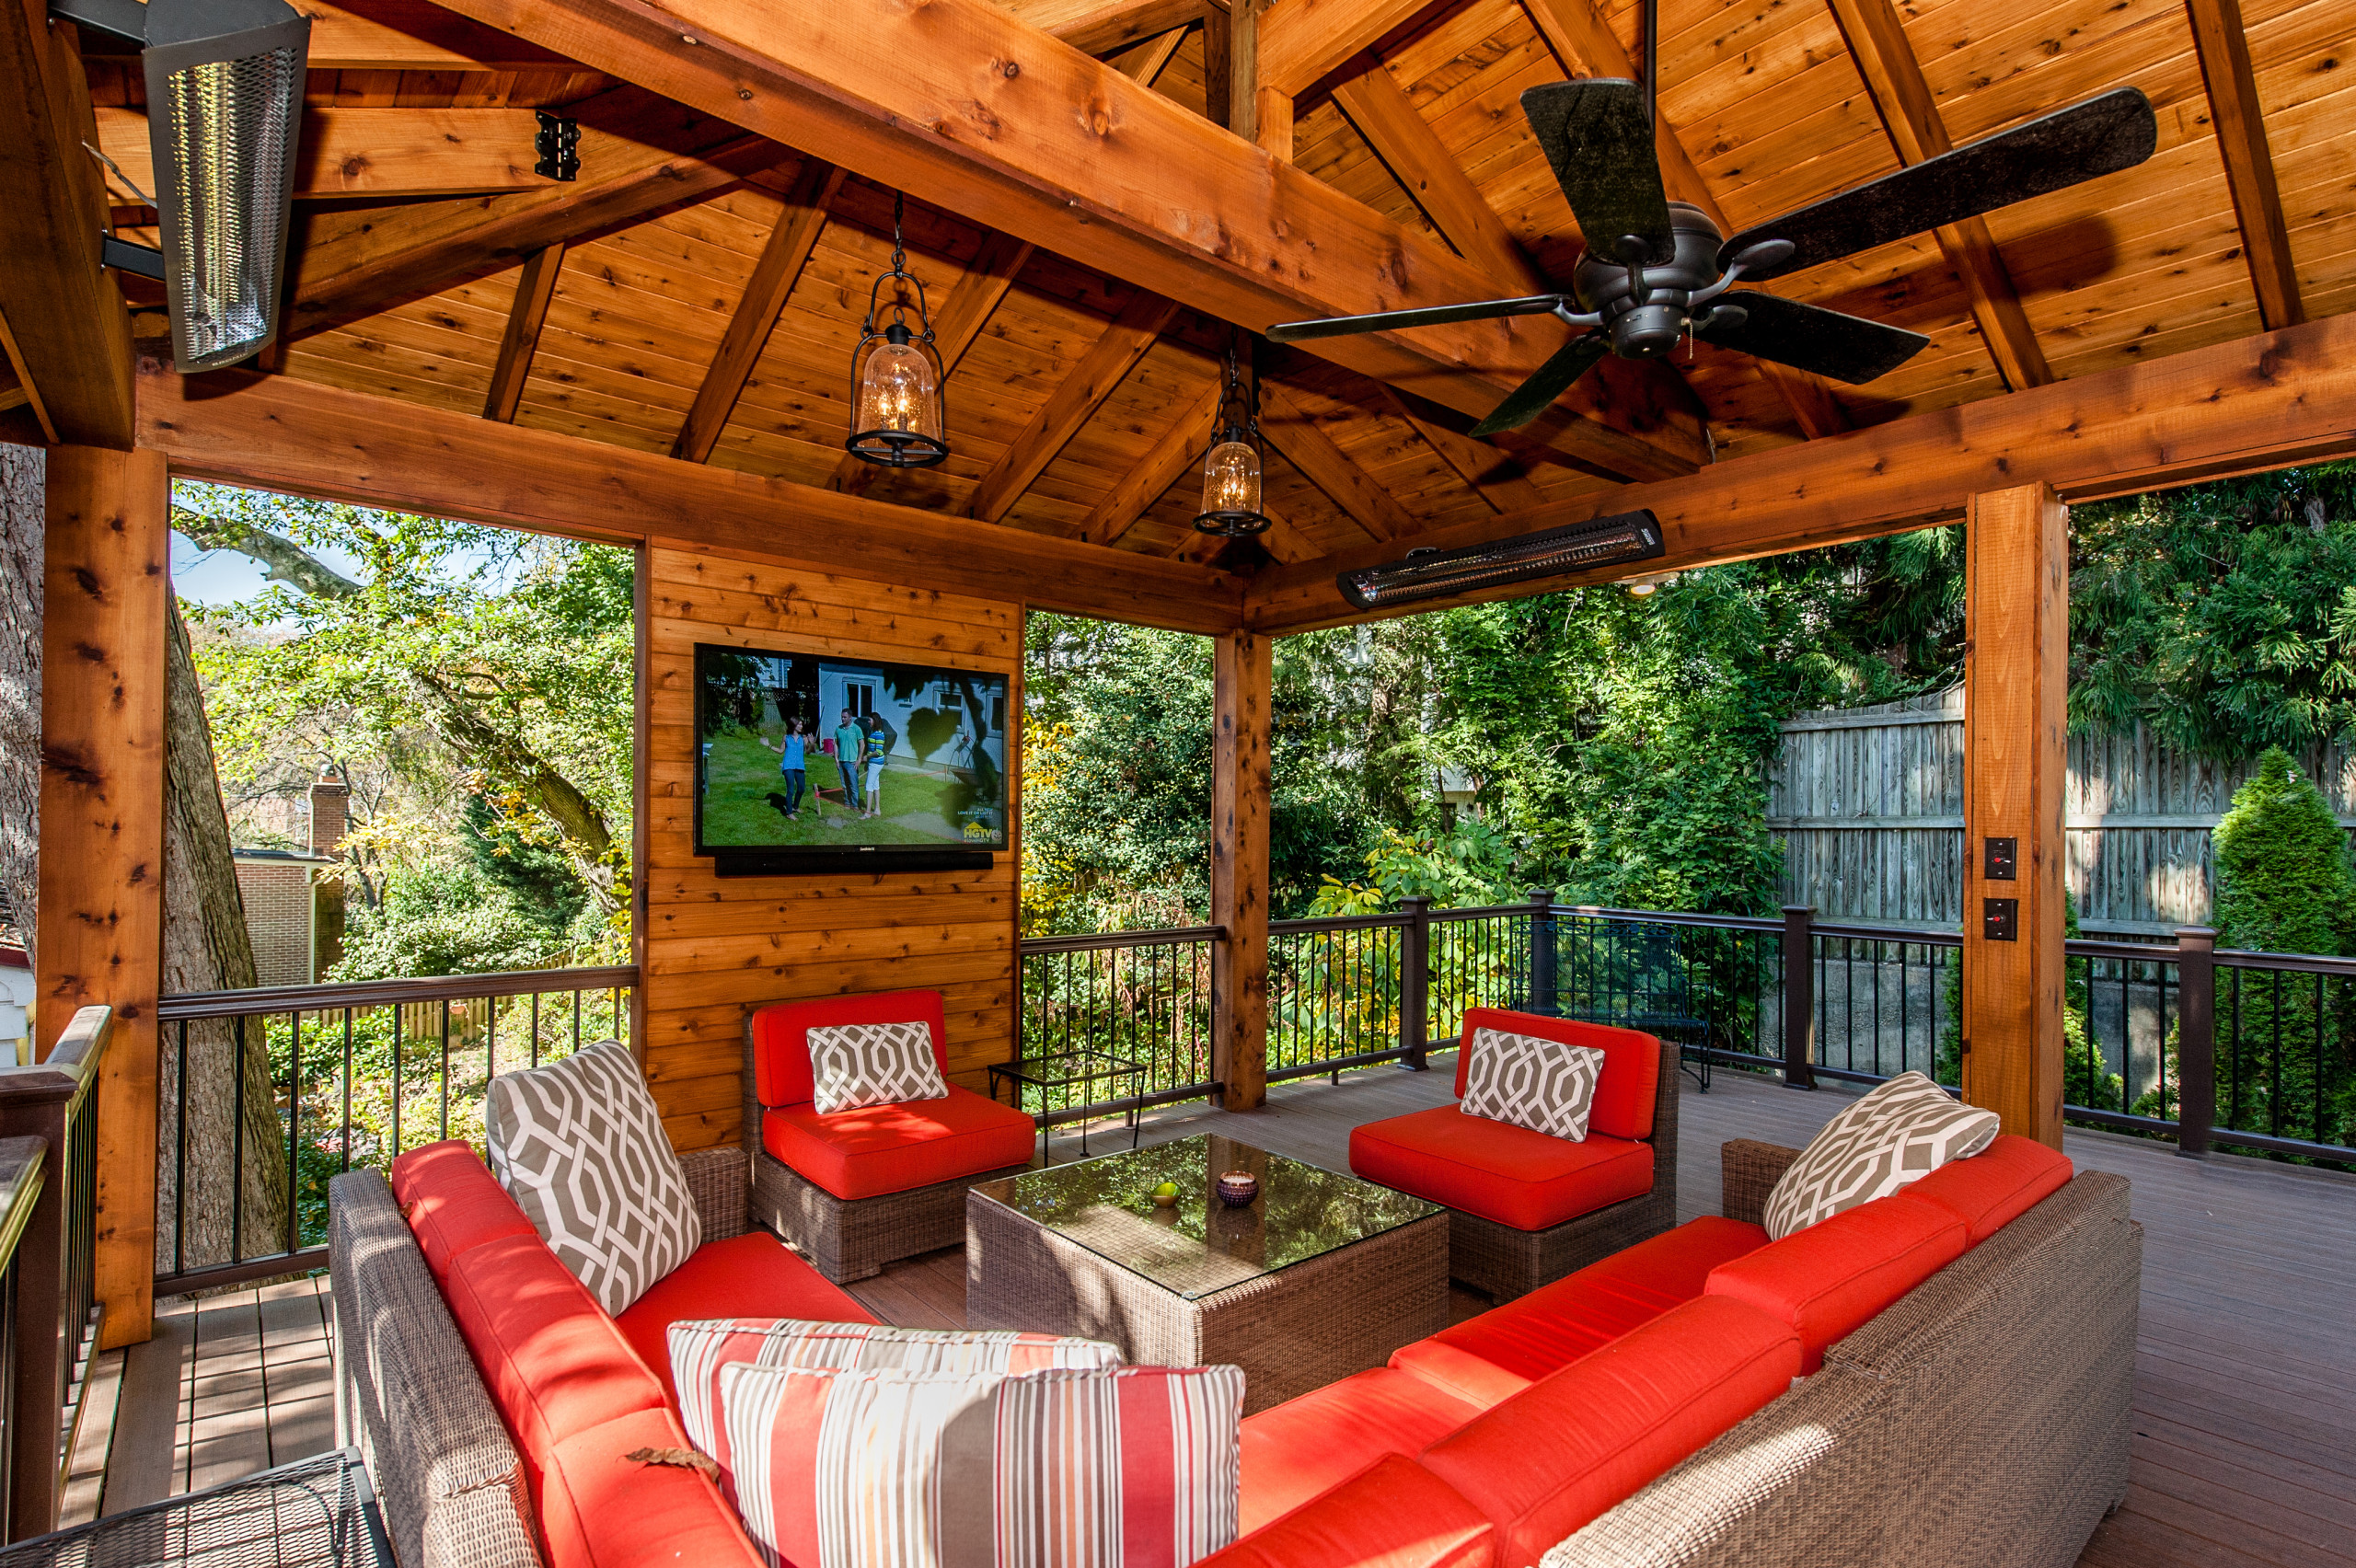 Imagine the possibilities! Your very own outdoor TV room.